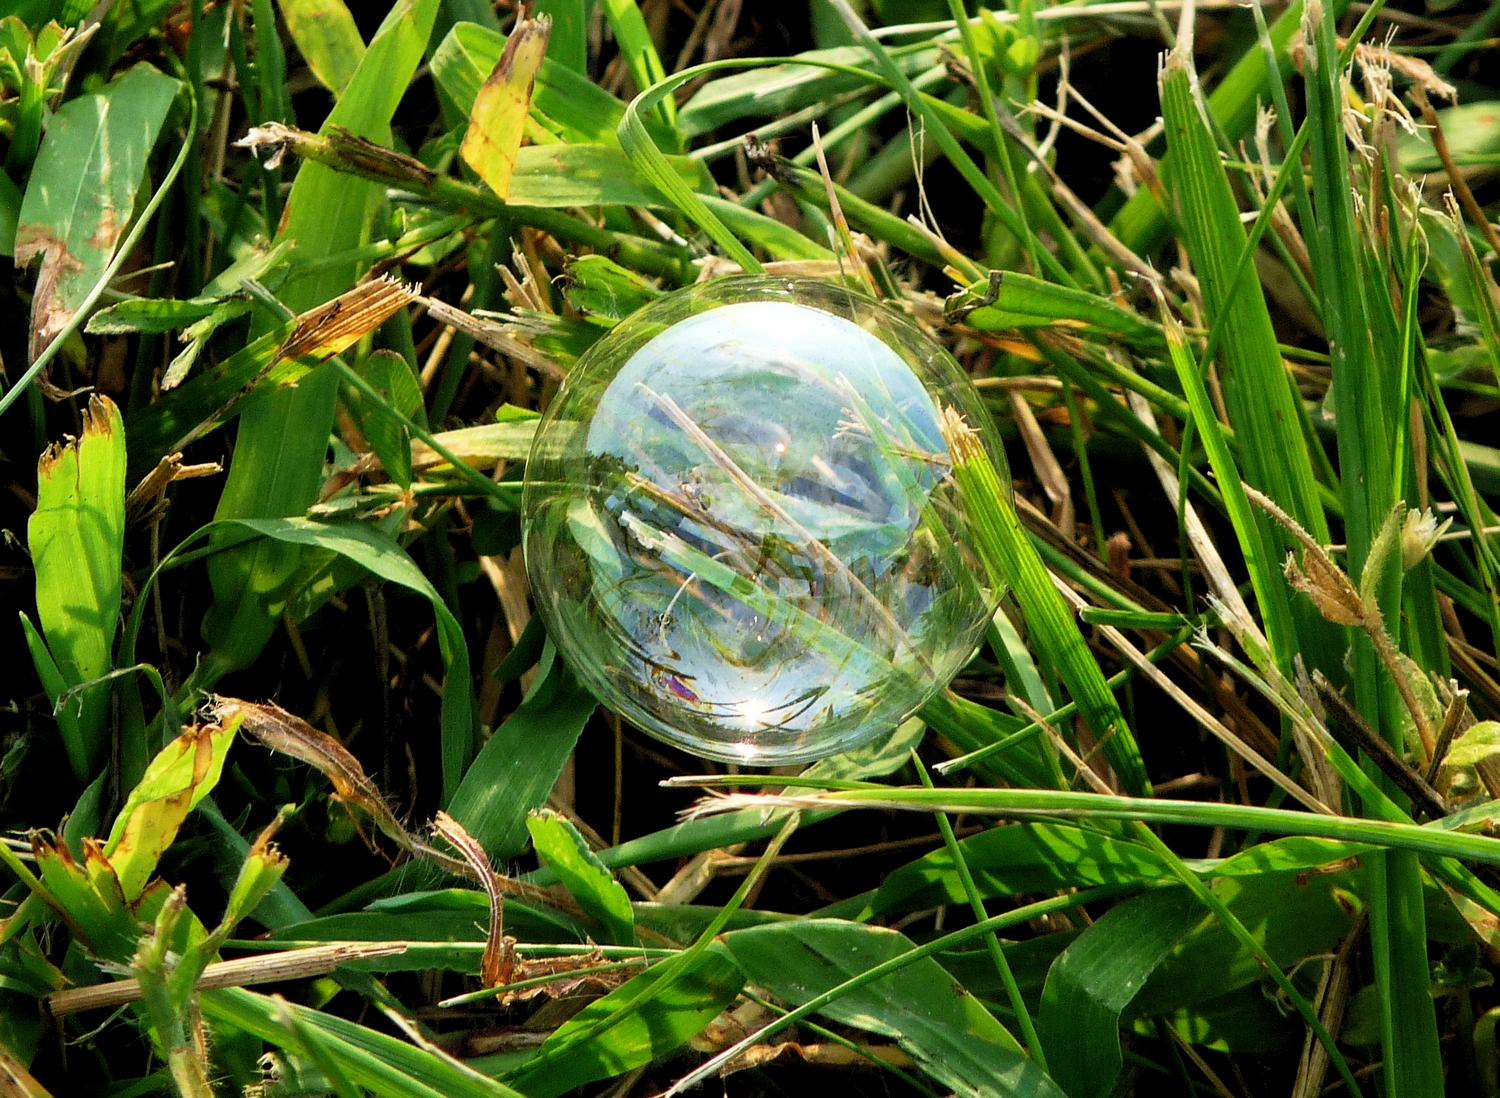 - A soap bubble on the grass. - Panasonic DMC-FZ28 -- At the Flying Circus - Bealton Virginia - Tony Karp, design, art, photography, techno-impressionist, techno-impressionism, aerial photography , drone , drones , dji , mavic pro , video , 3D printing - Books -